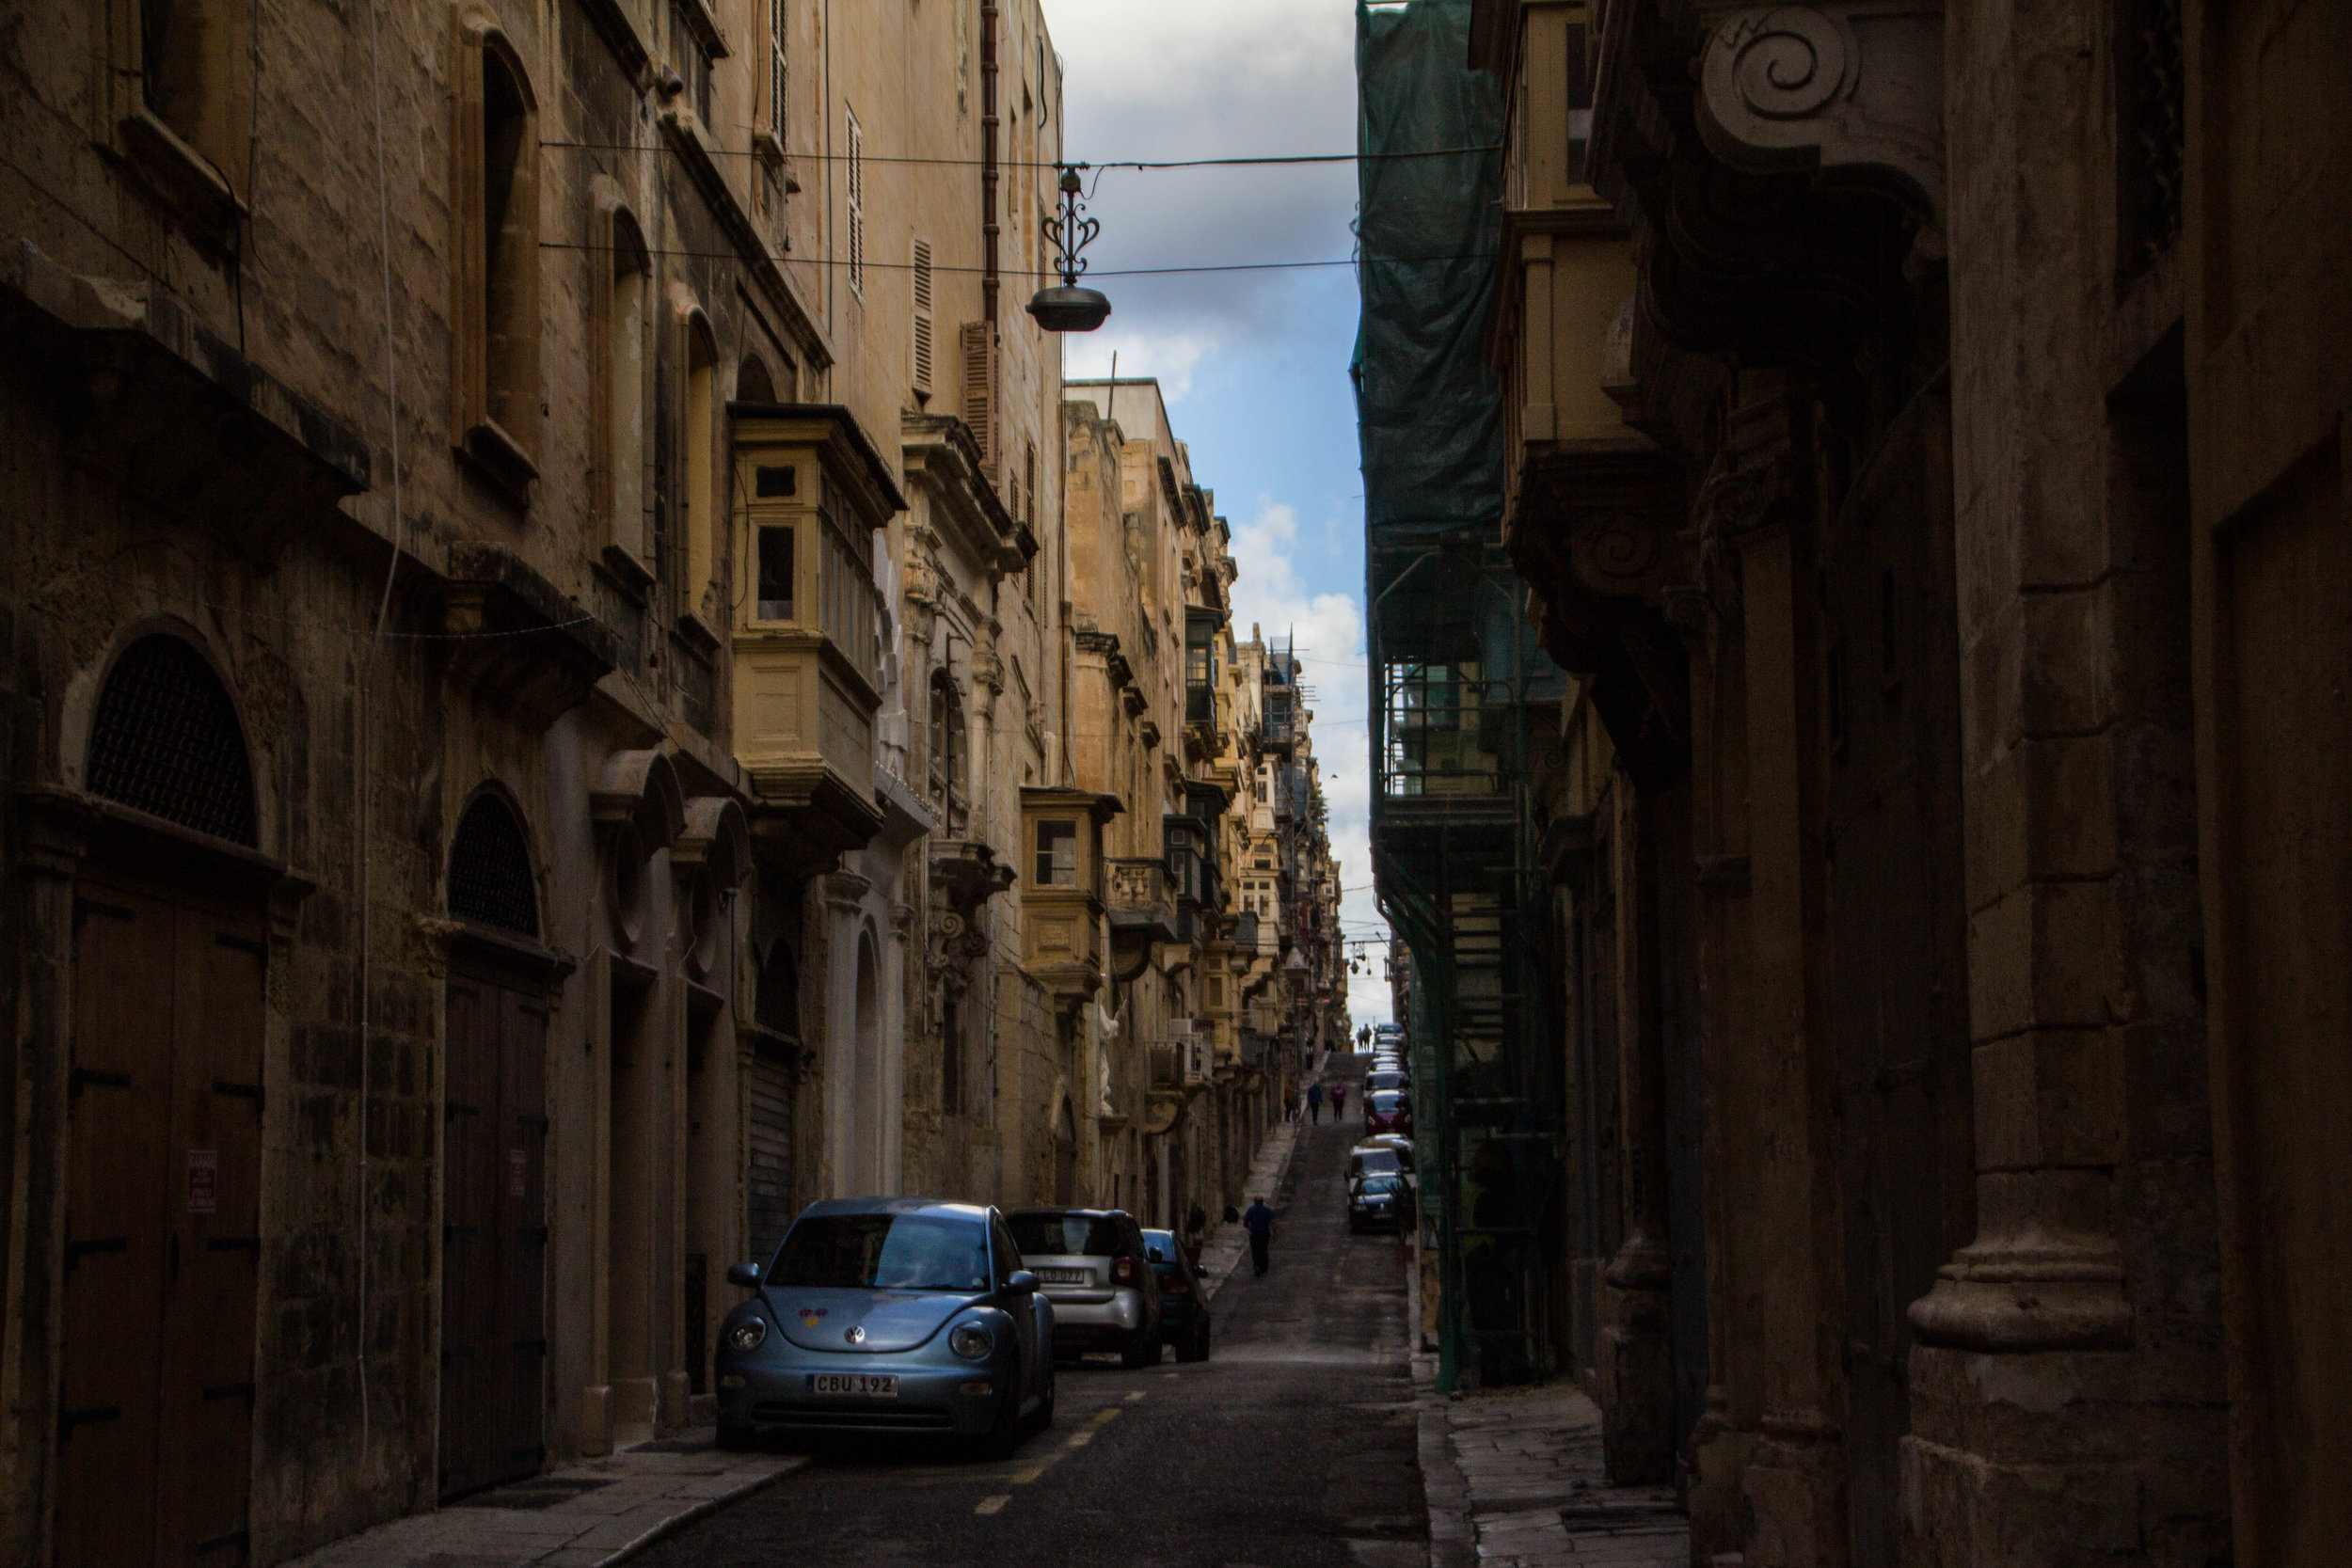 valletta-malta-clouds-rain-streets-photography-13.jpg